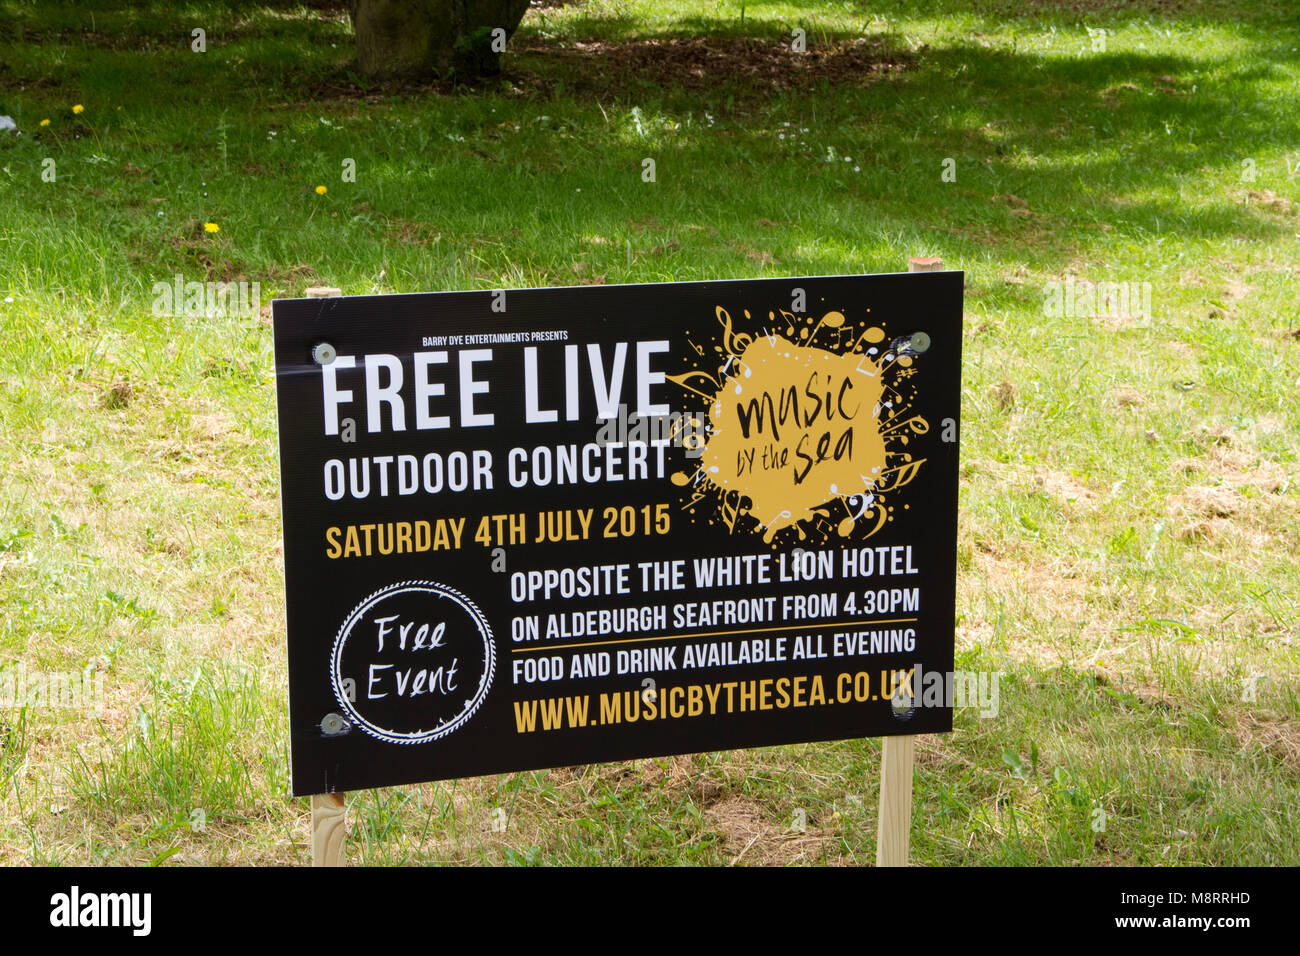 Board advertising free live outdoor concert - Stock Image